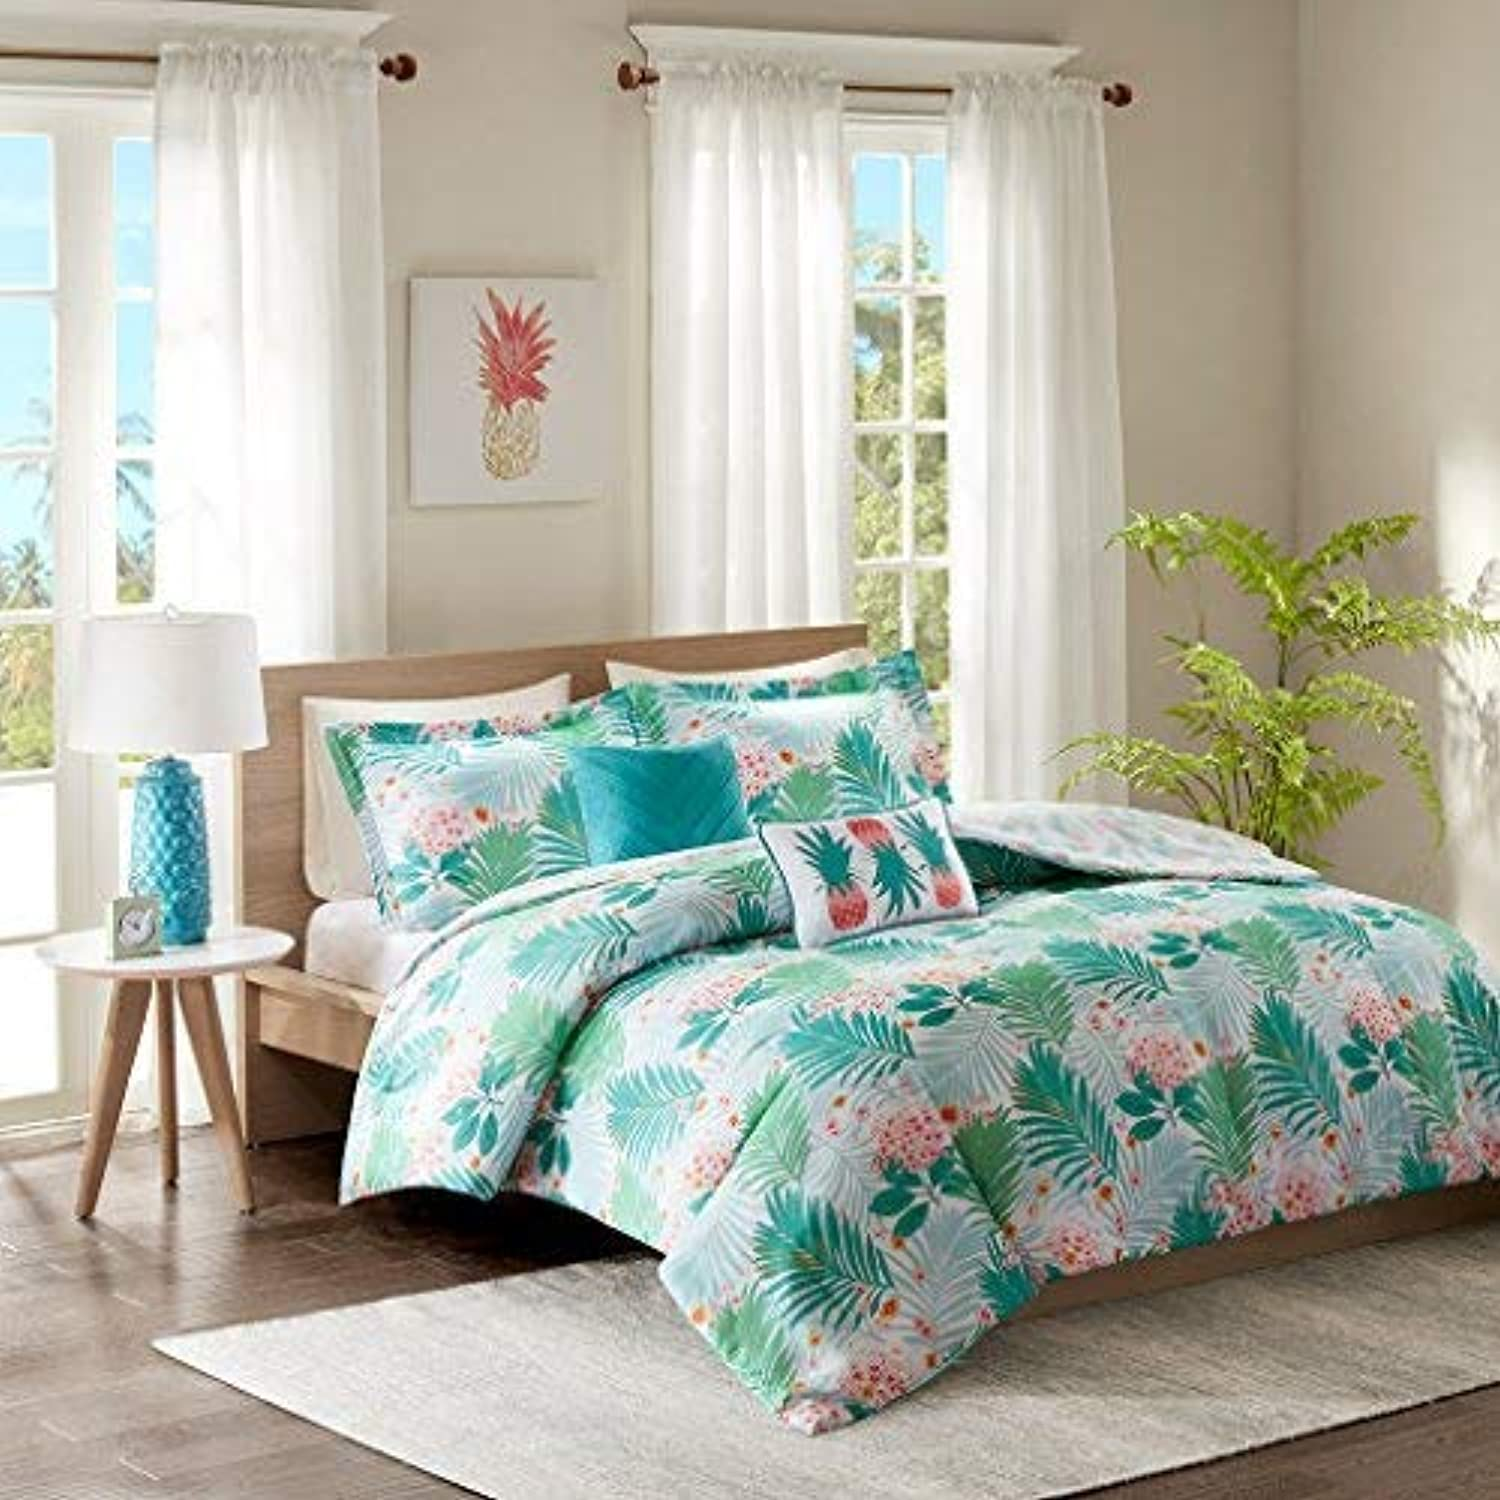 Intelligent Design Tropicana Comforter Set Full Queen Size - Aqua, Tropical Floral Pineapple Print – 5 Piece Bed Sets – Ultra Soft Microfiber Teen Bedding for Girls Bedroom